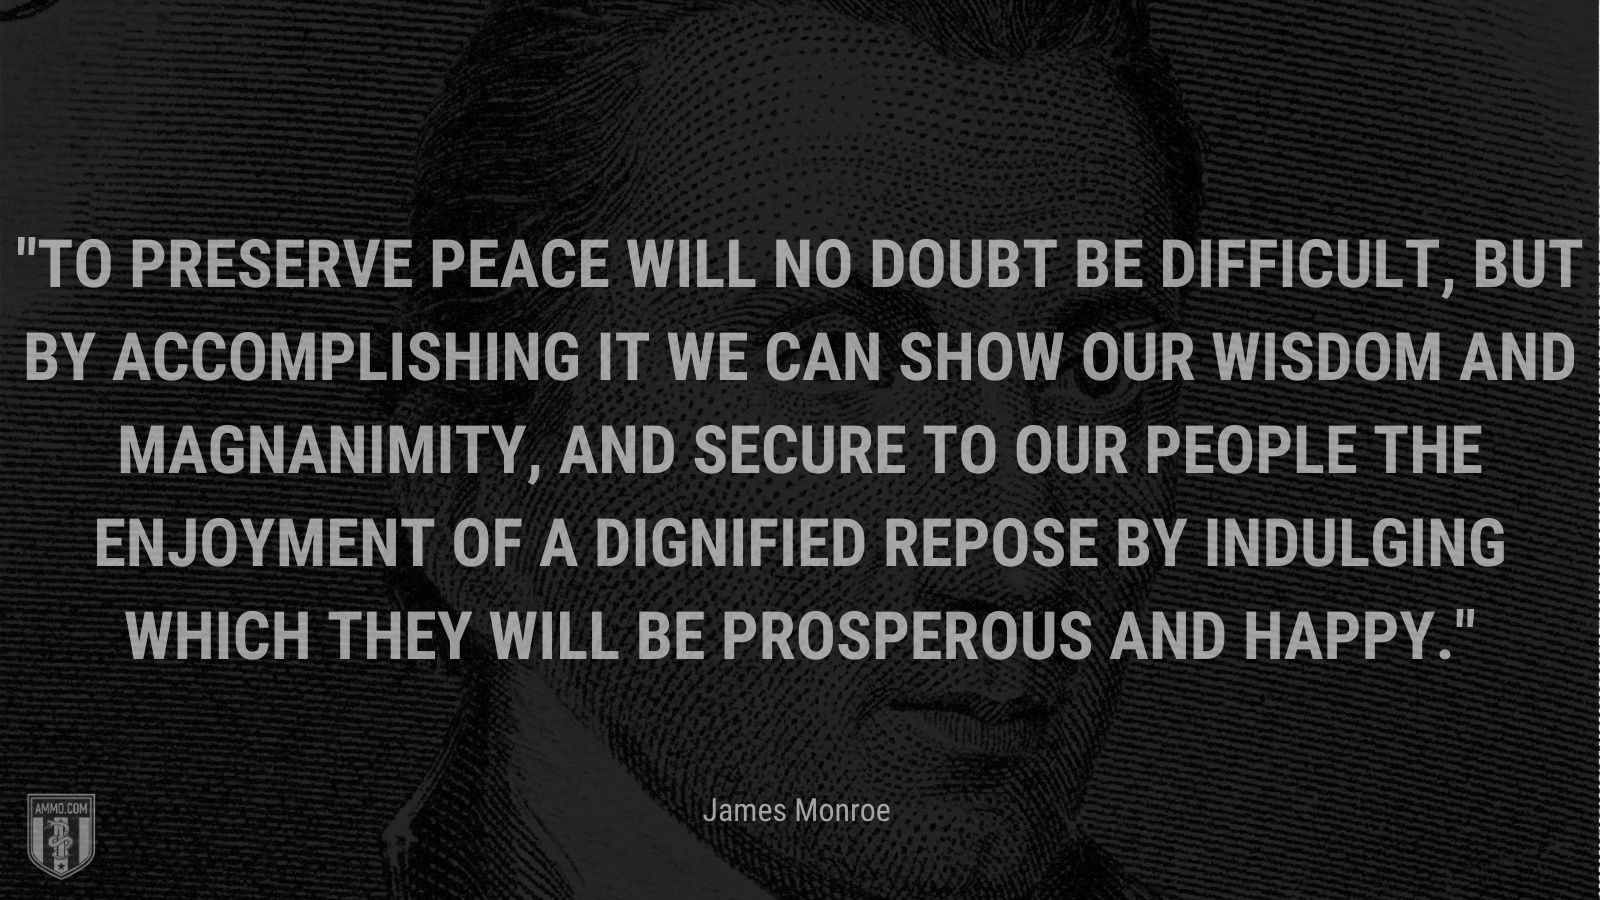 """""""To preserve peace will no doubt be difficult, but by accomplishing it we can show our wisdom and magnanimity, and secure to our people the enjoyment of a dignified repose by indulging which they will be prosperous and happy."""" - James Monroe"""